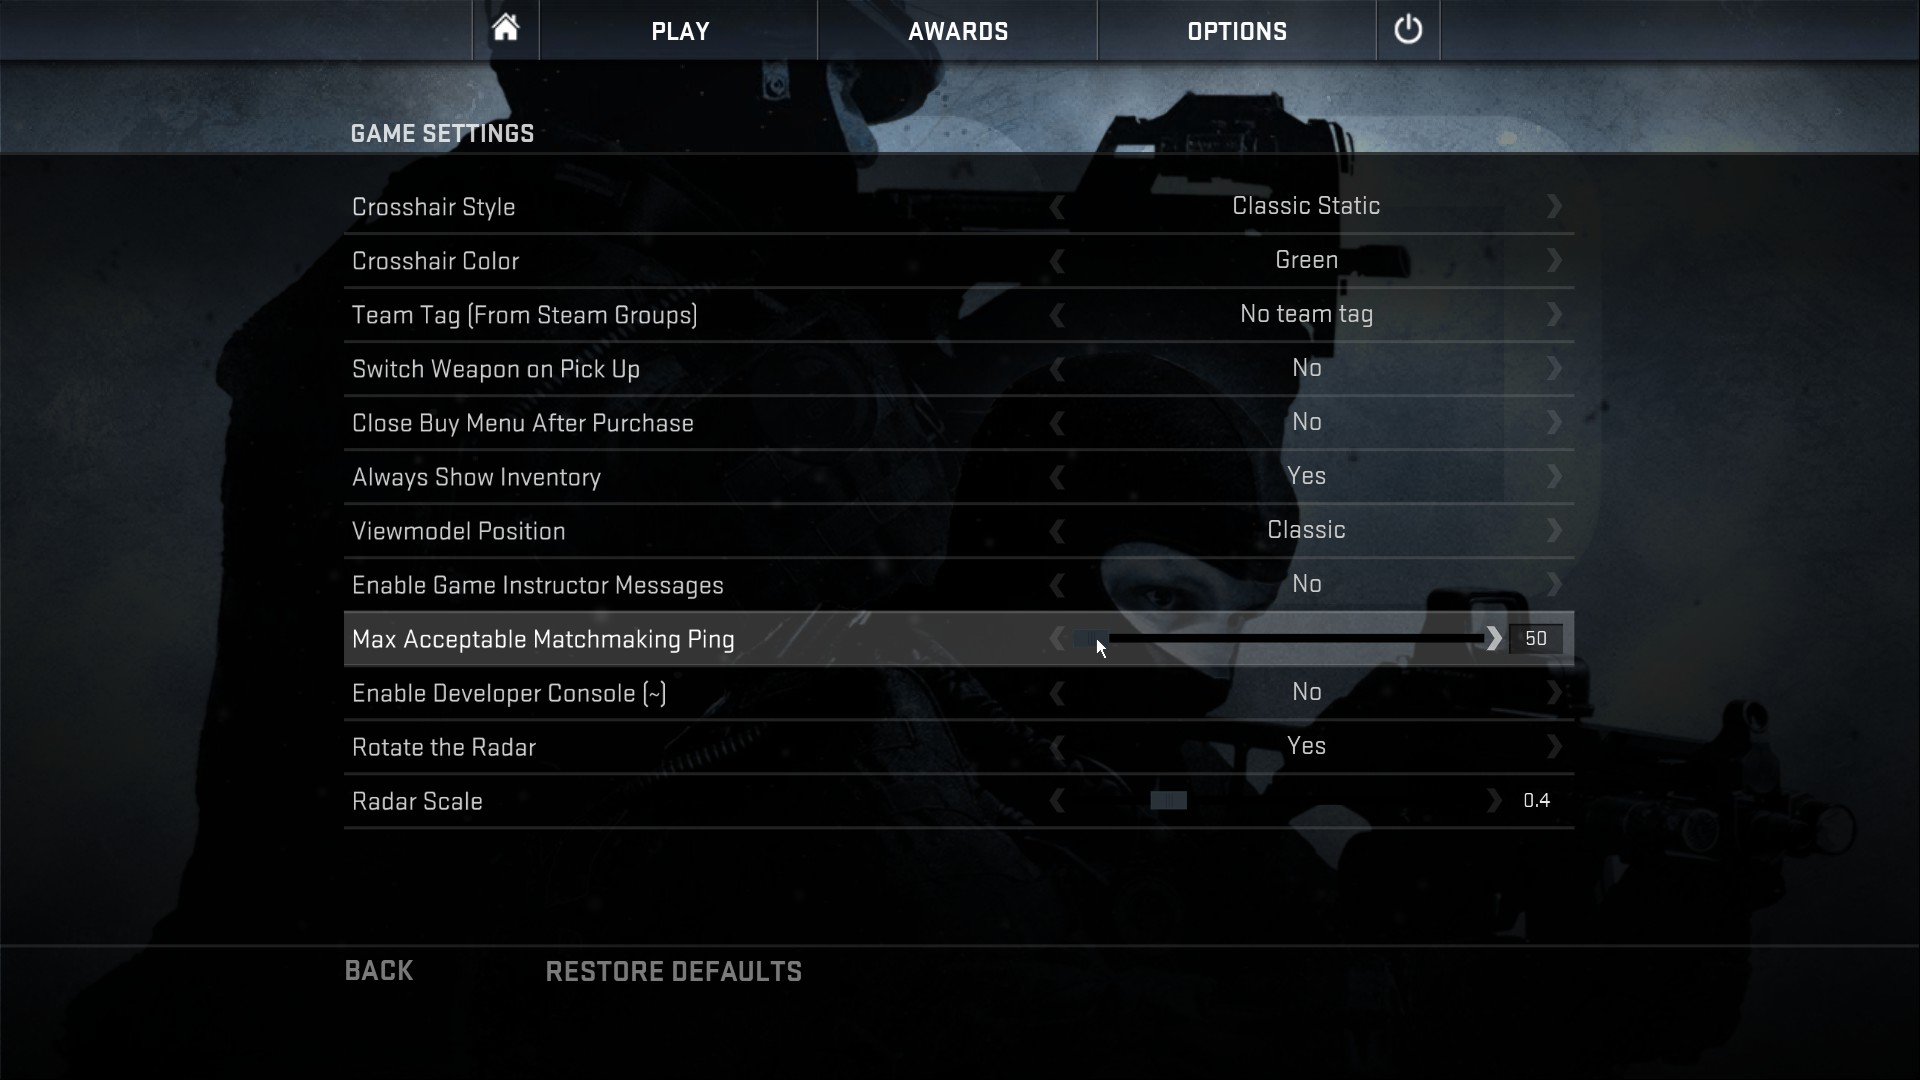 CS GO console commands launch options and configs